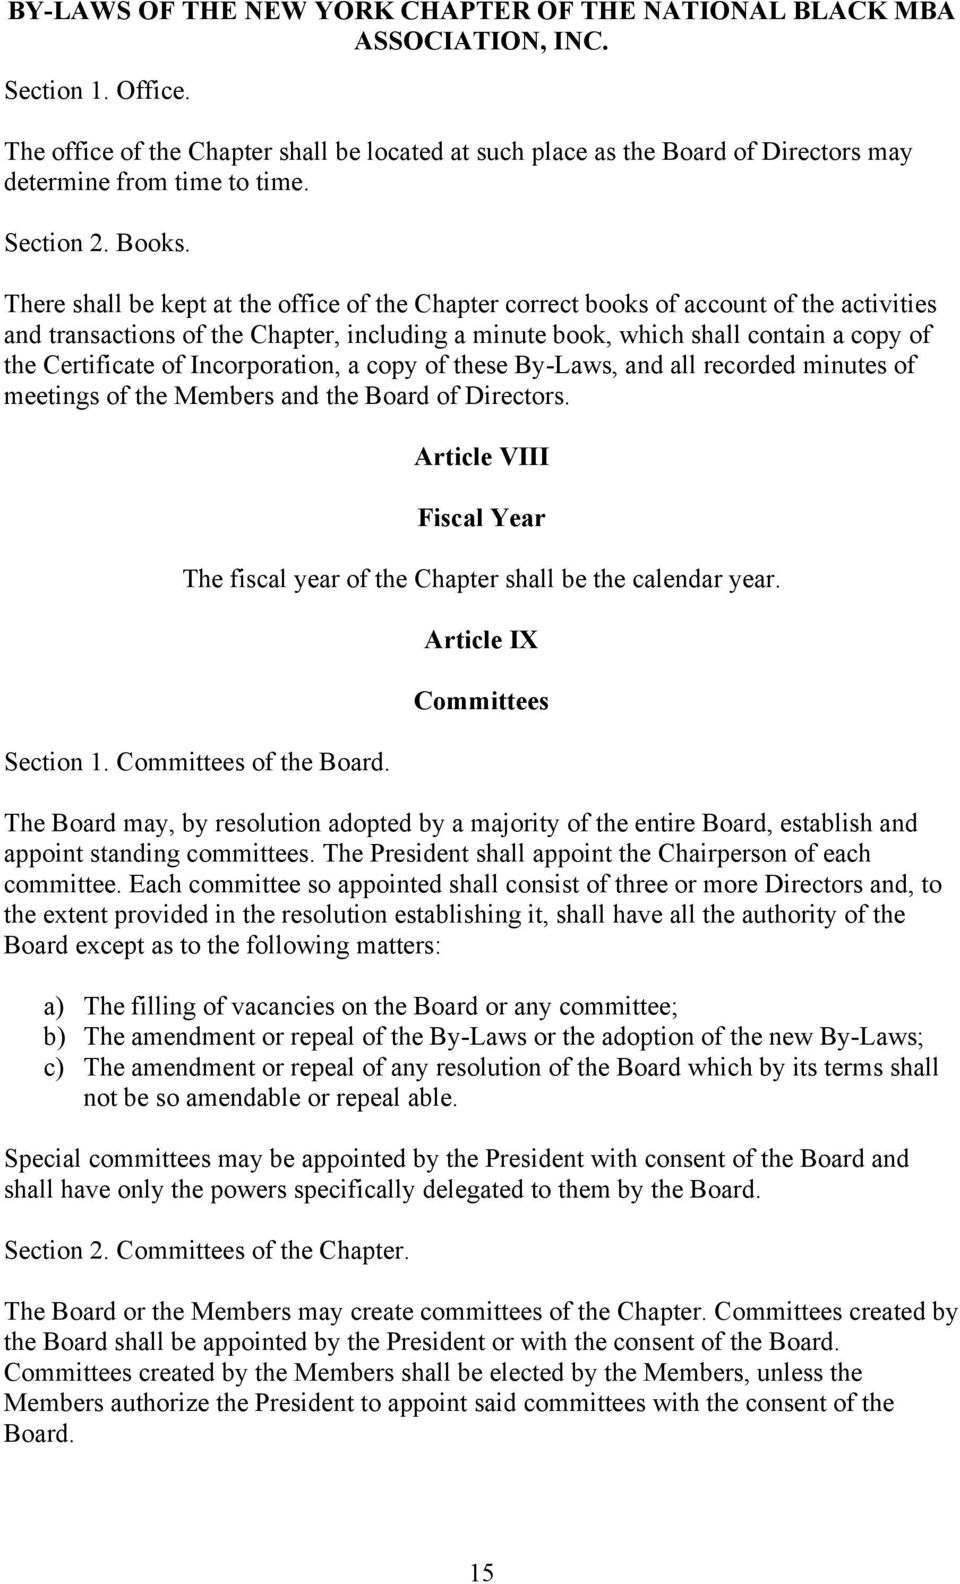 Incorporation, a copy of these By-Laws, and all recorded minutes of meetings of the Members and the Board of Directors.